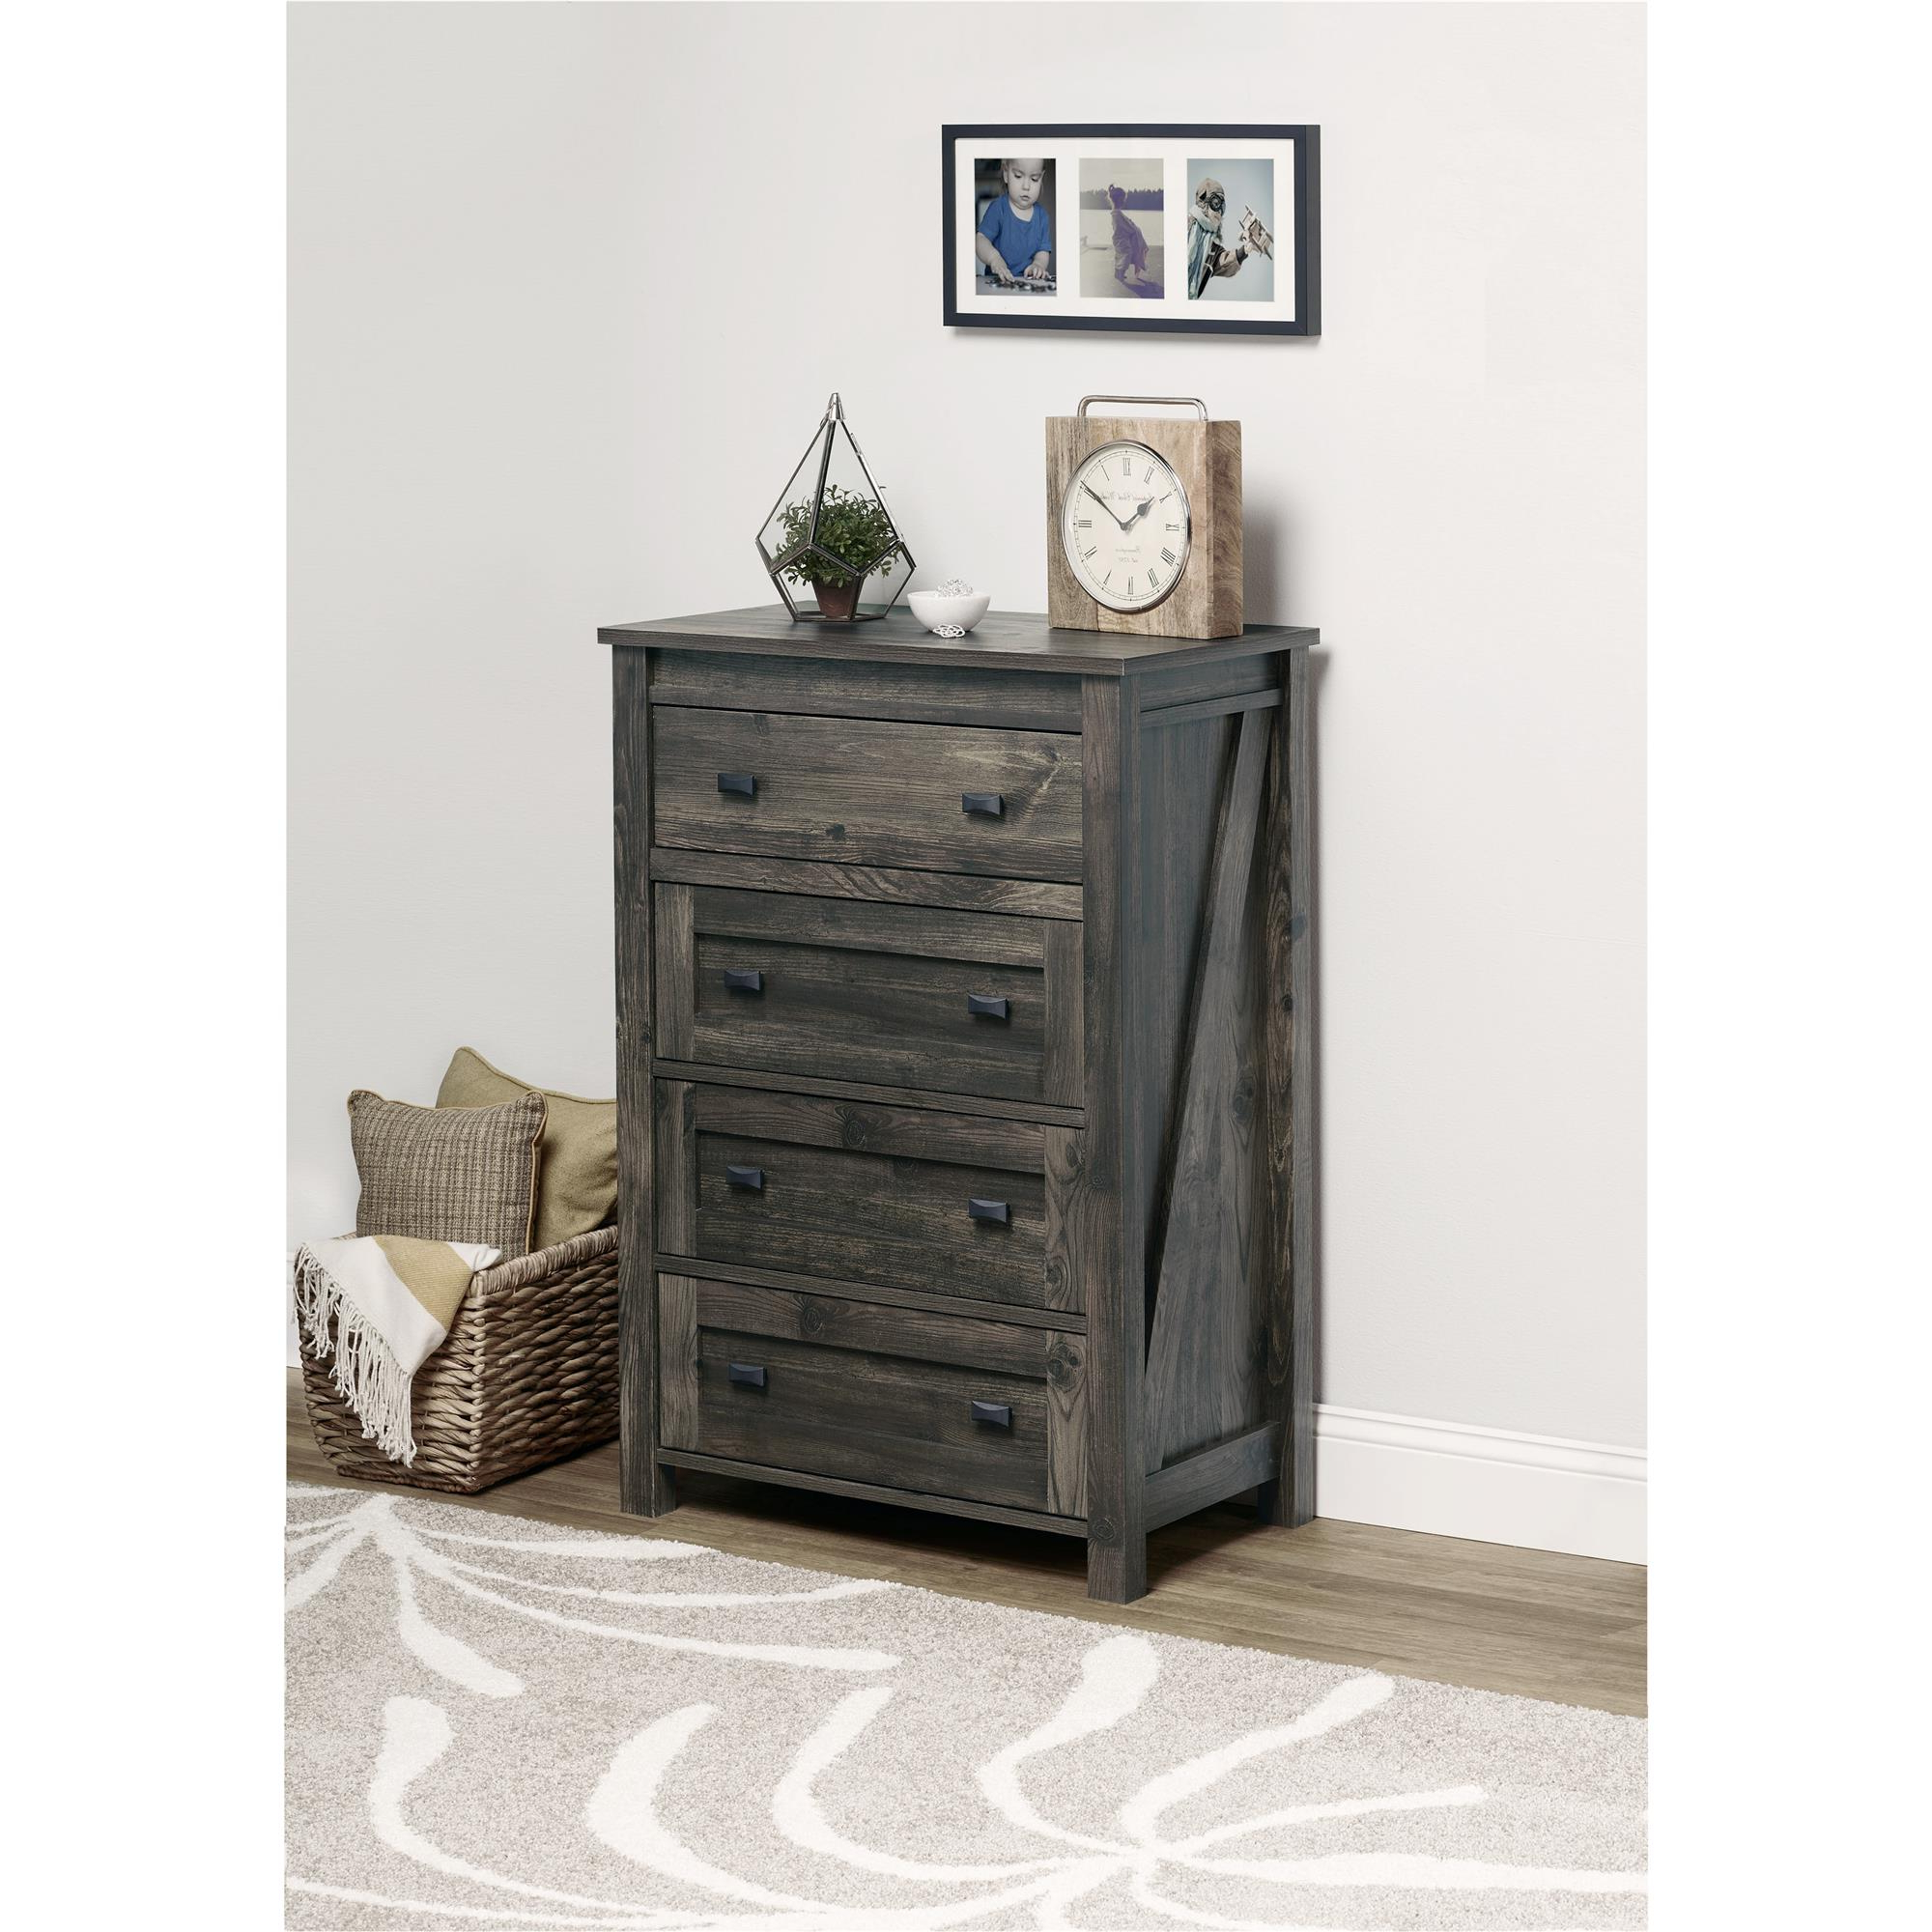 Ameriwood Home Farmington 4 Drawer Dresser, Multiple Colors Pertaining To Popular Reclaimed Elm 91 Inch Sideboards (Gallery 20 of 20)